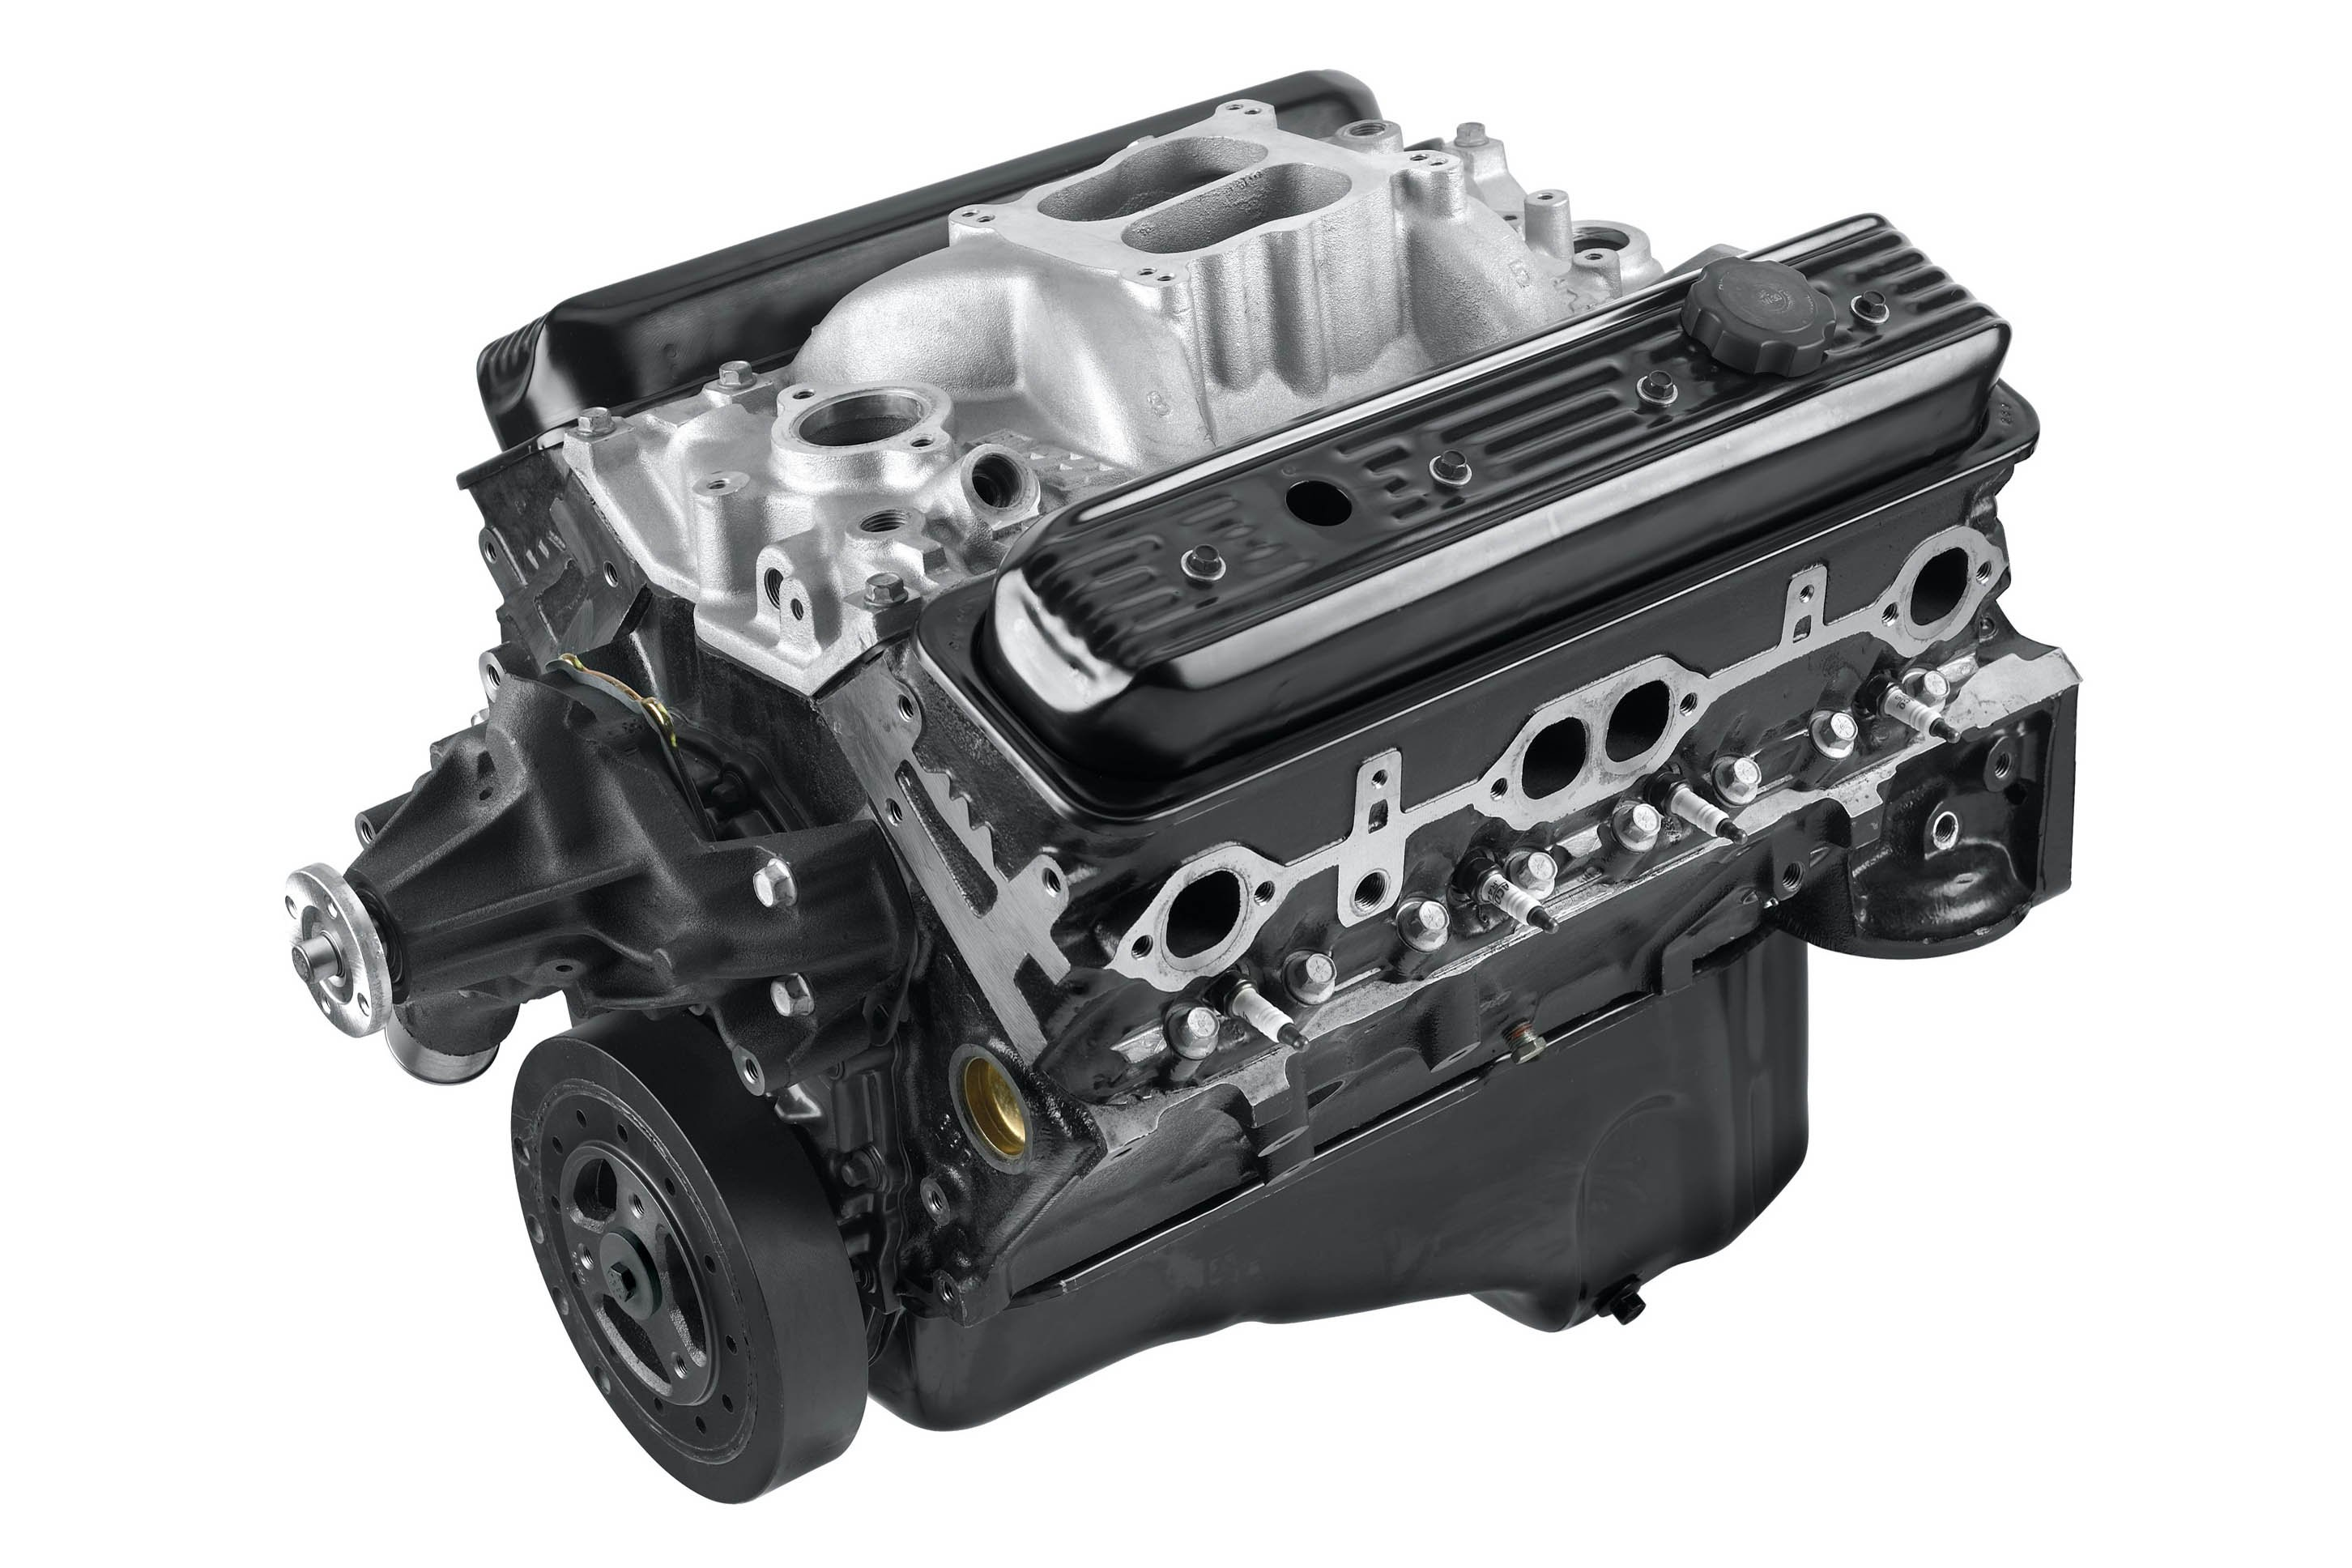 Gmc 350 Crate Engines Gmc Free Engine Image For User